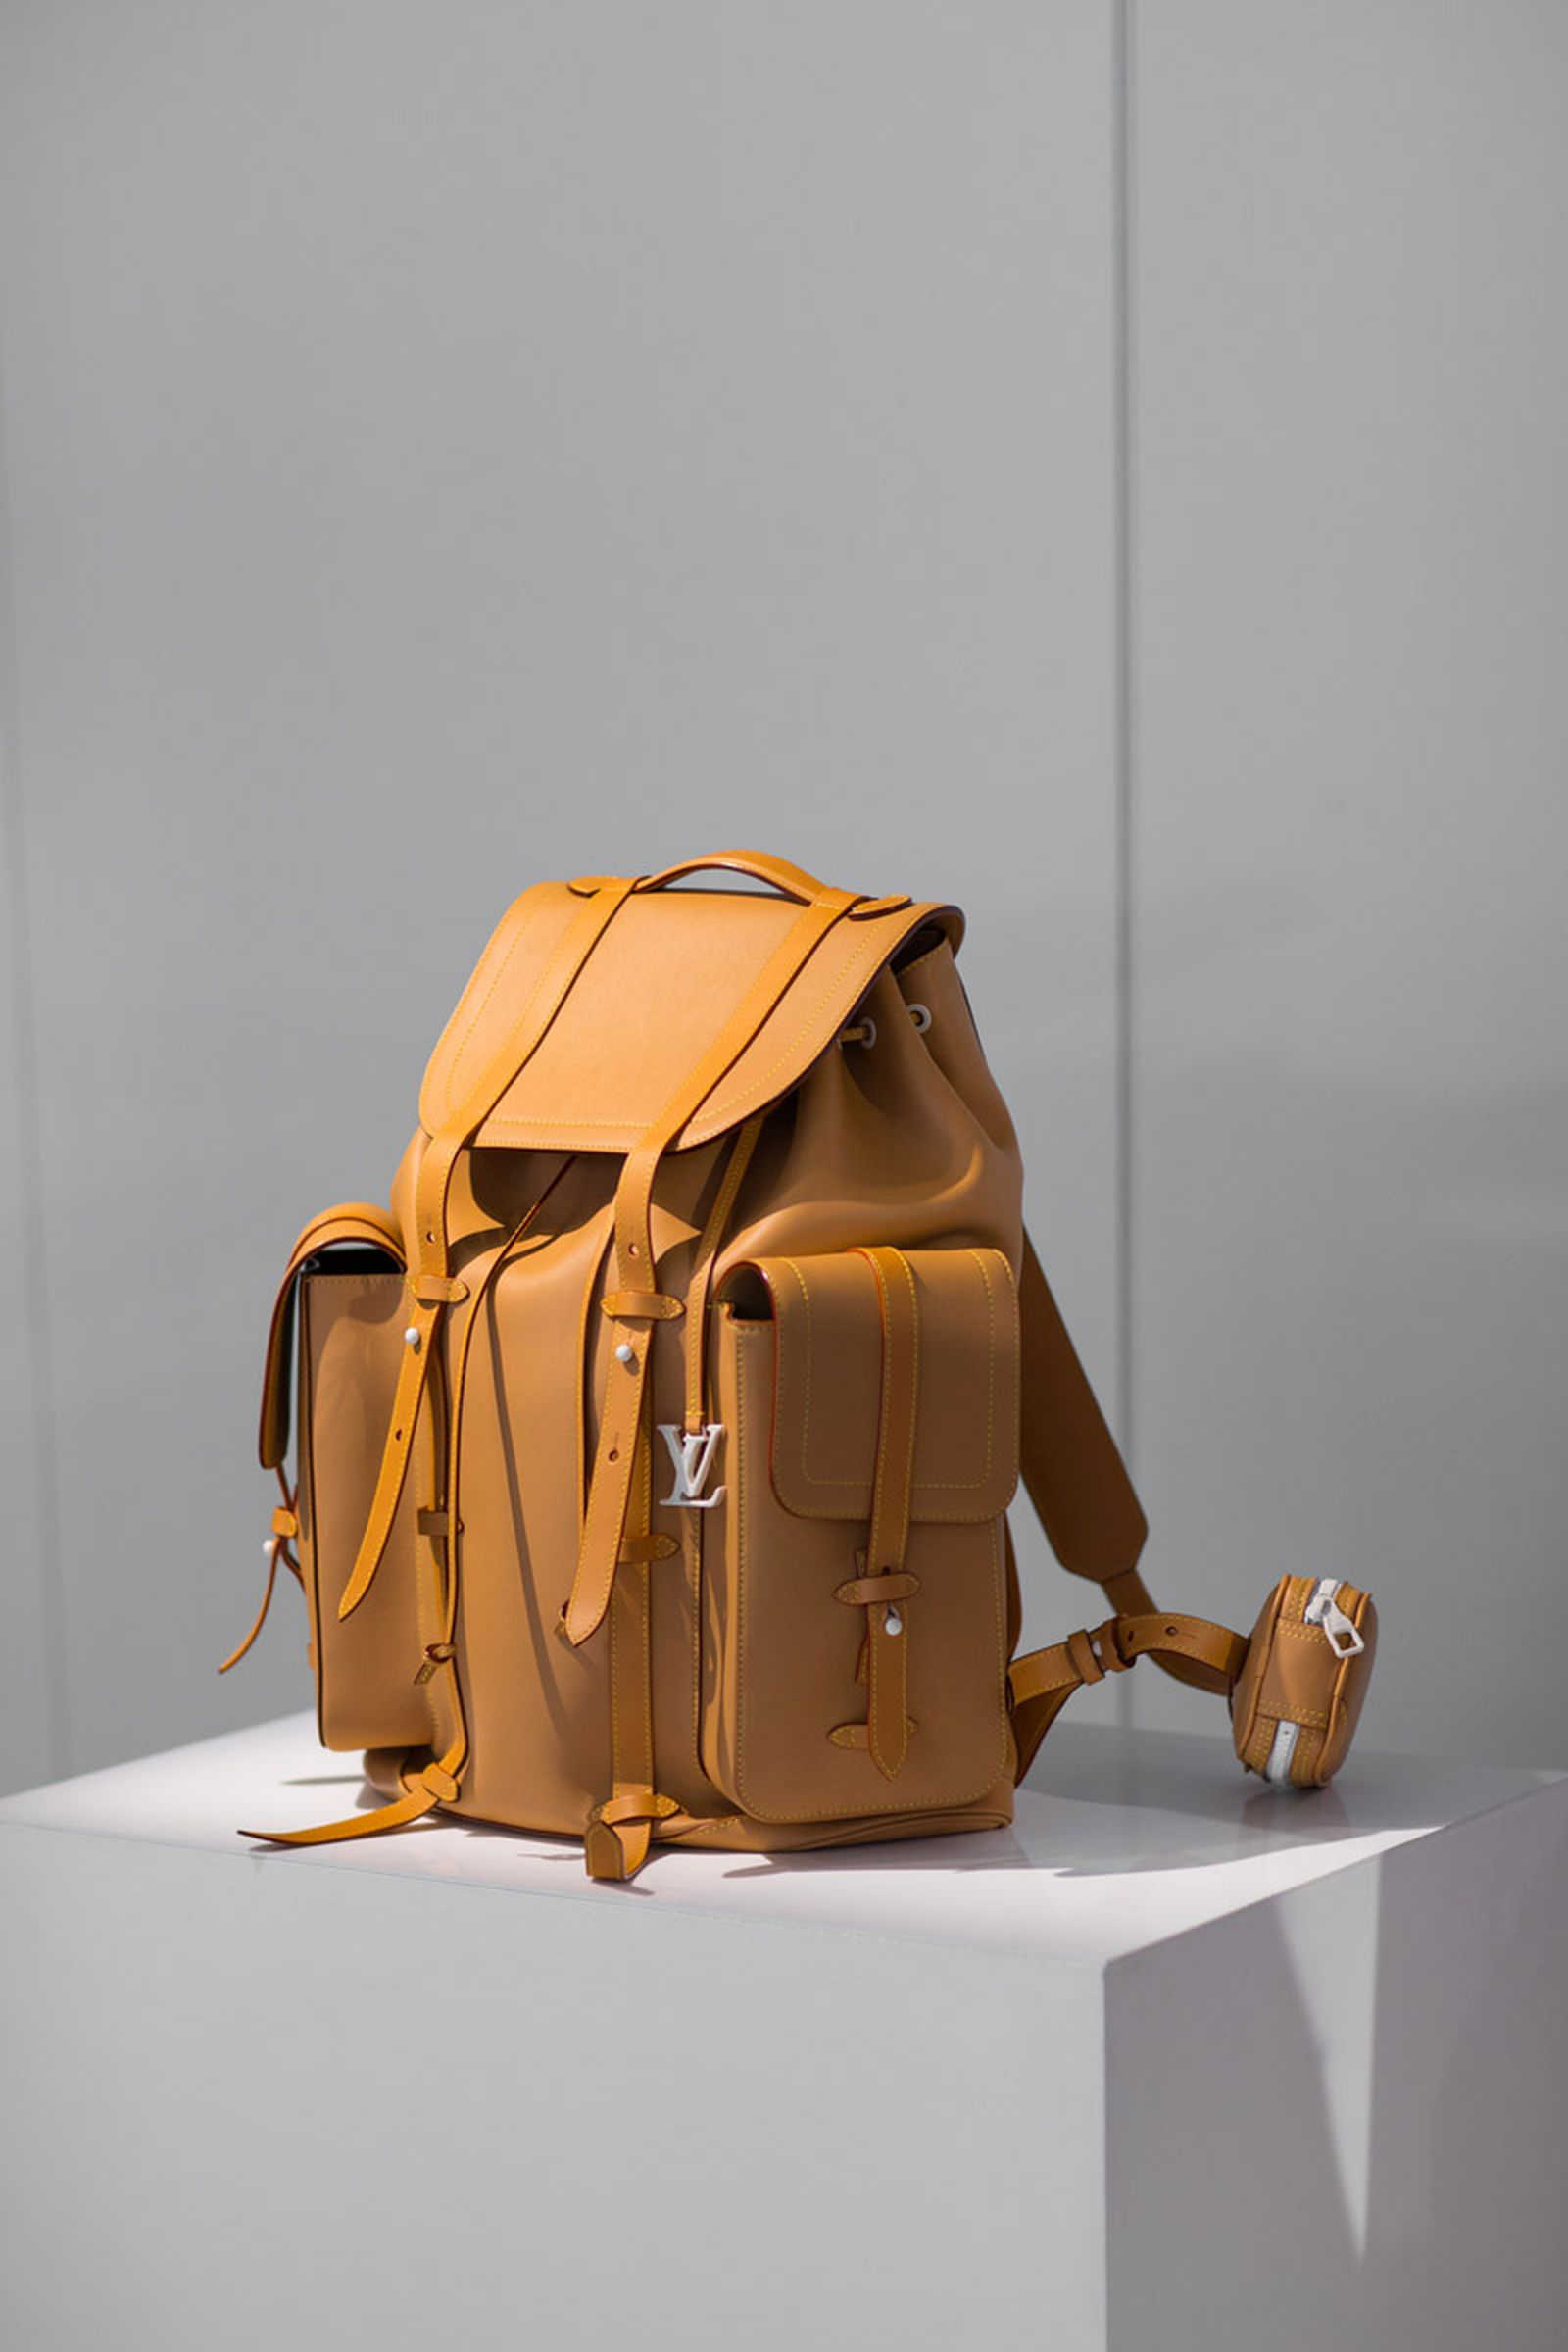 louis vuitton ss19 showroom accessories PFW18 Spring/Summer 2019